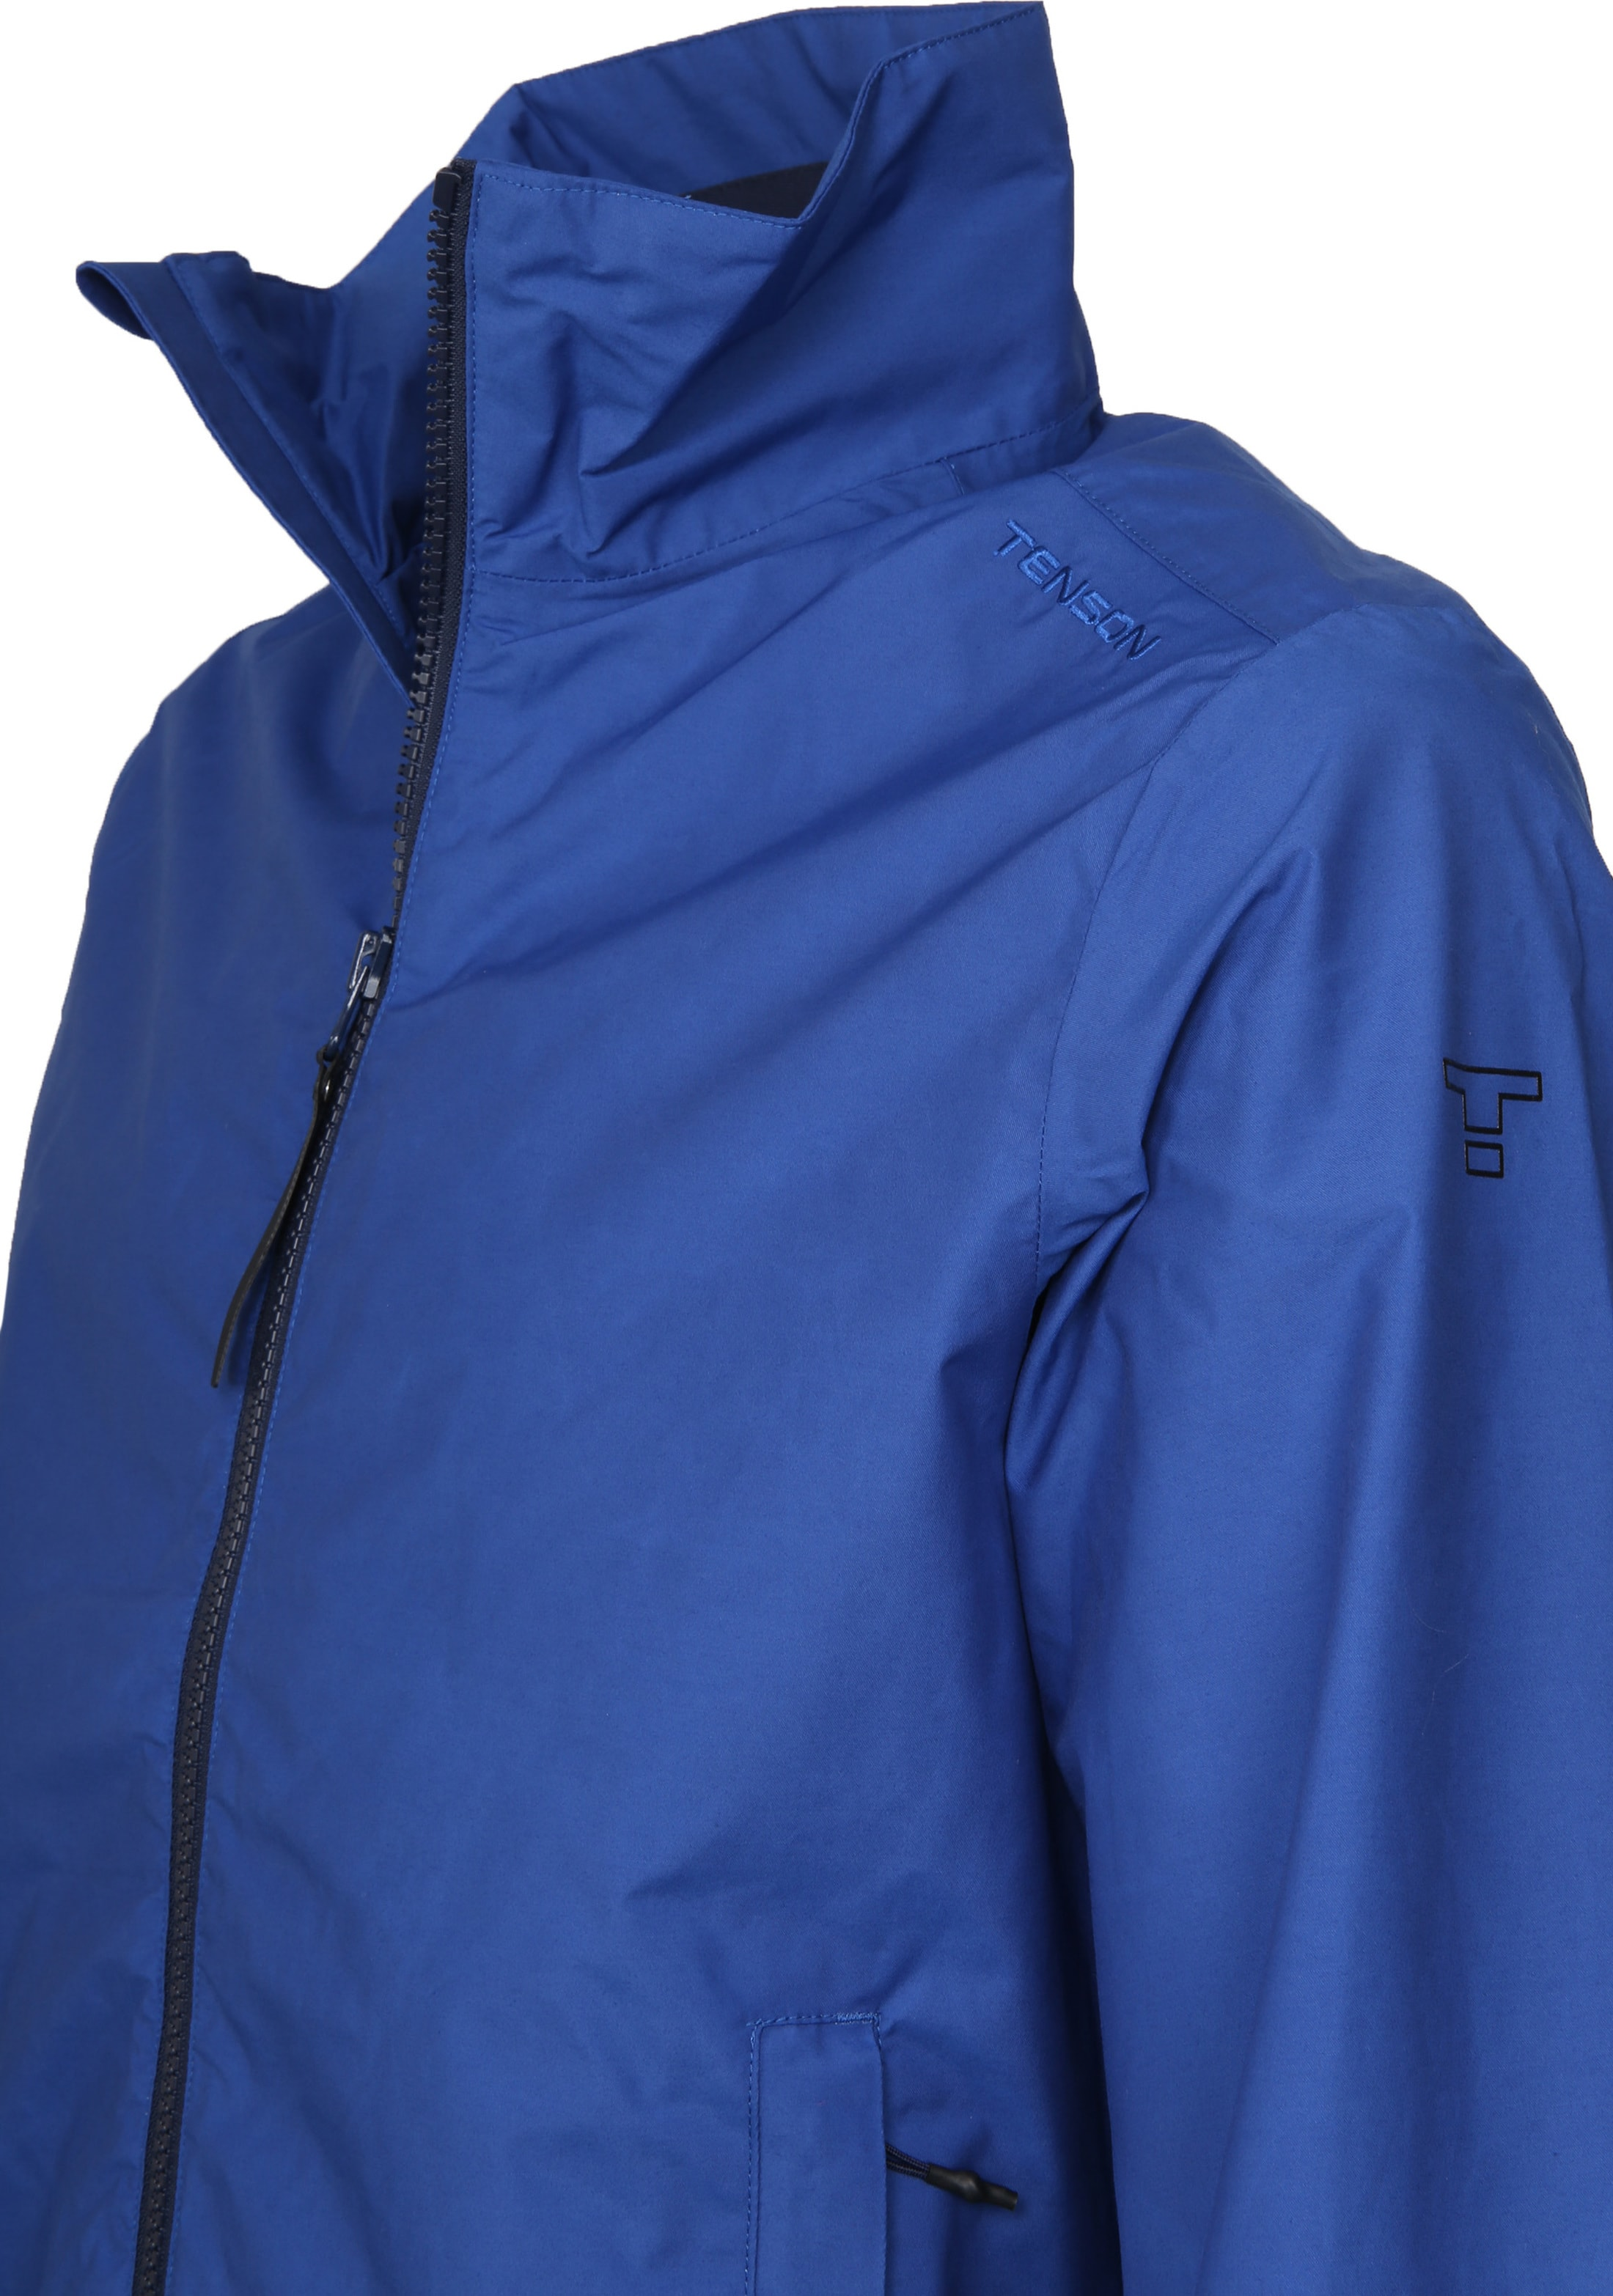 Tenson Summer Jacket Keaton Blue foto 2